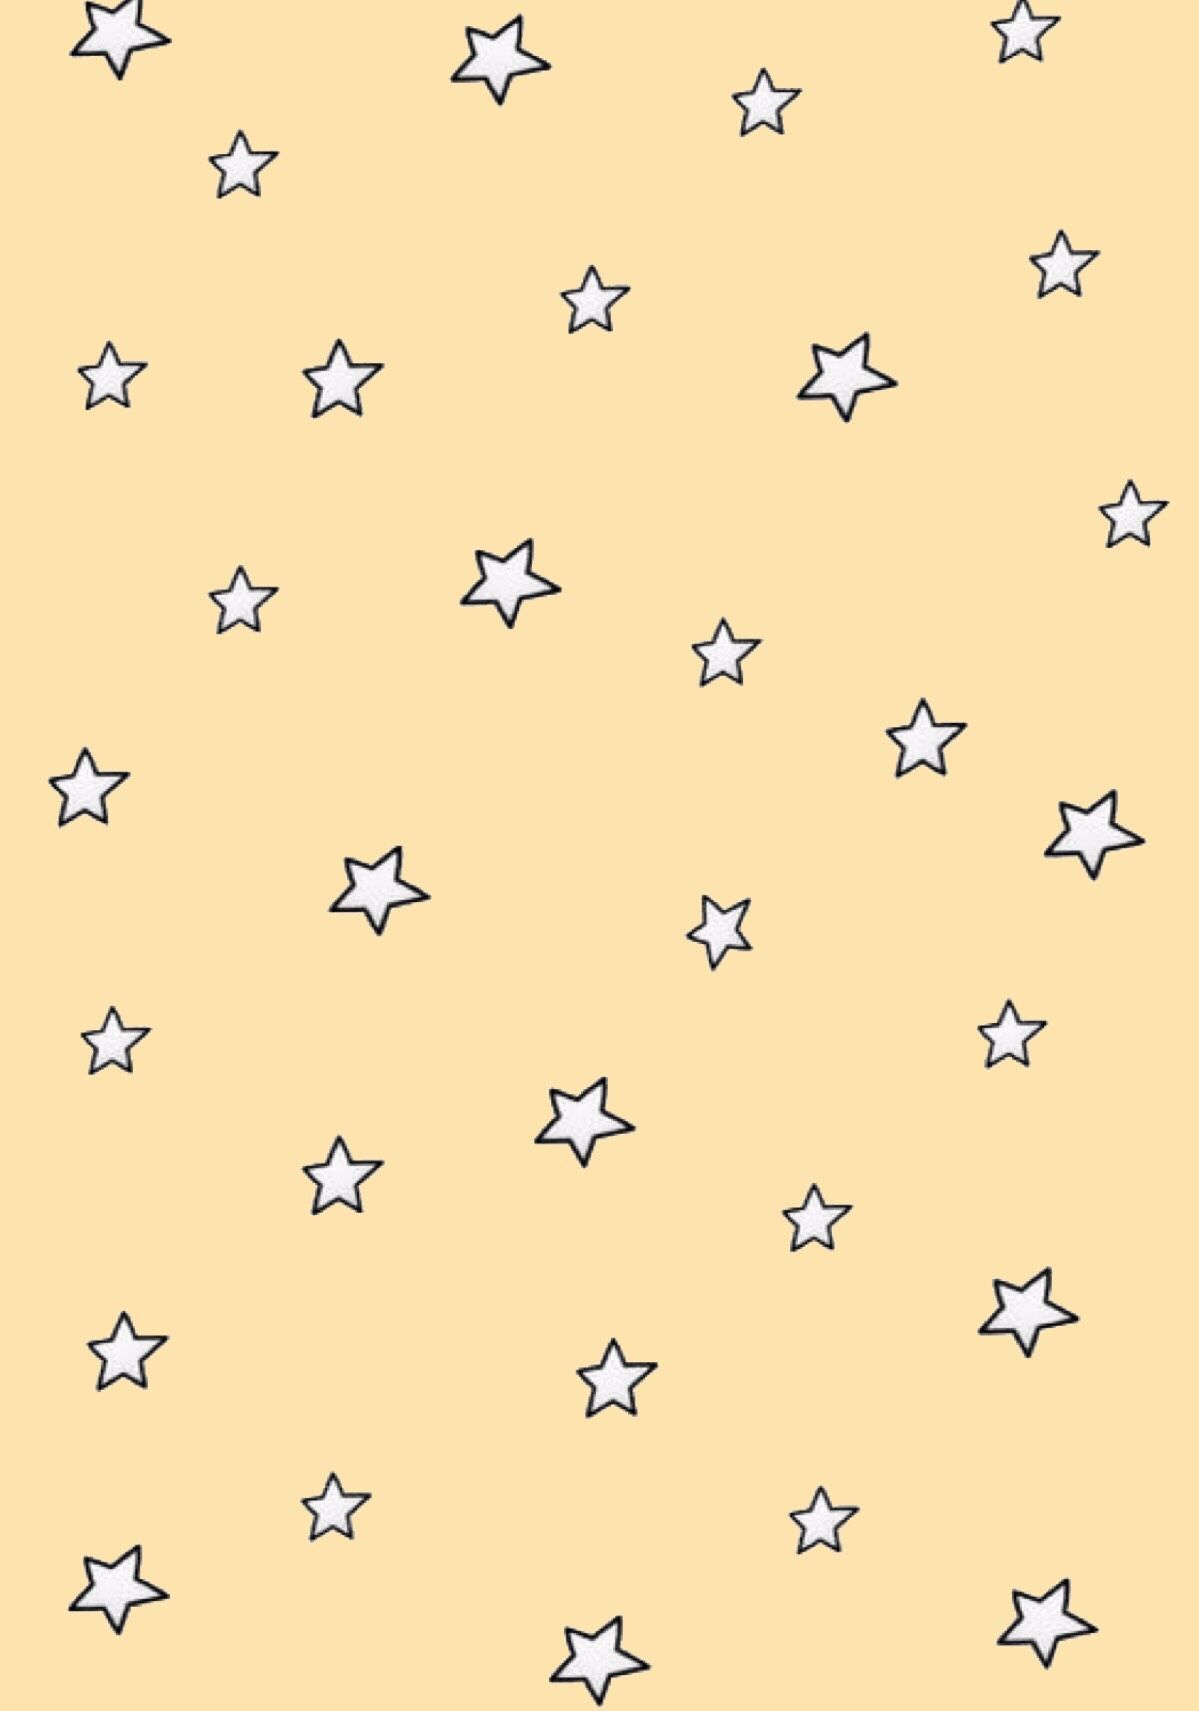 Aesthetic Background Star Wallpaper Aesthetic